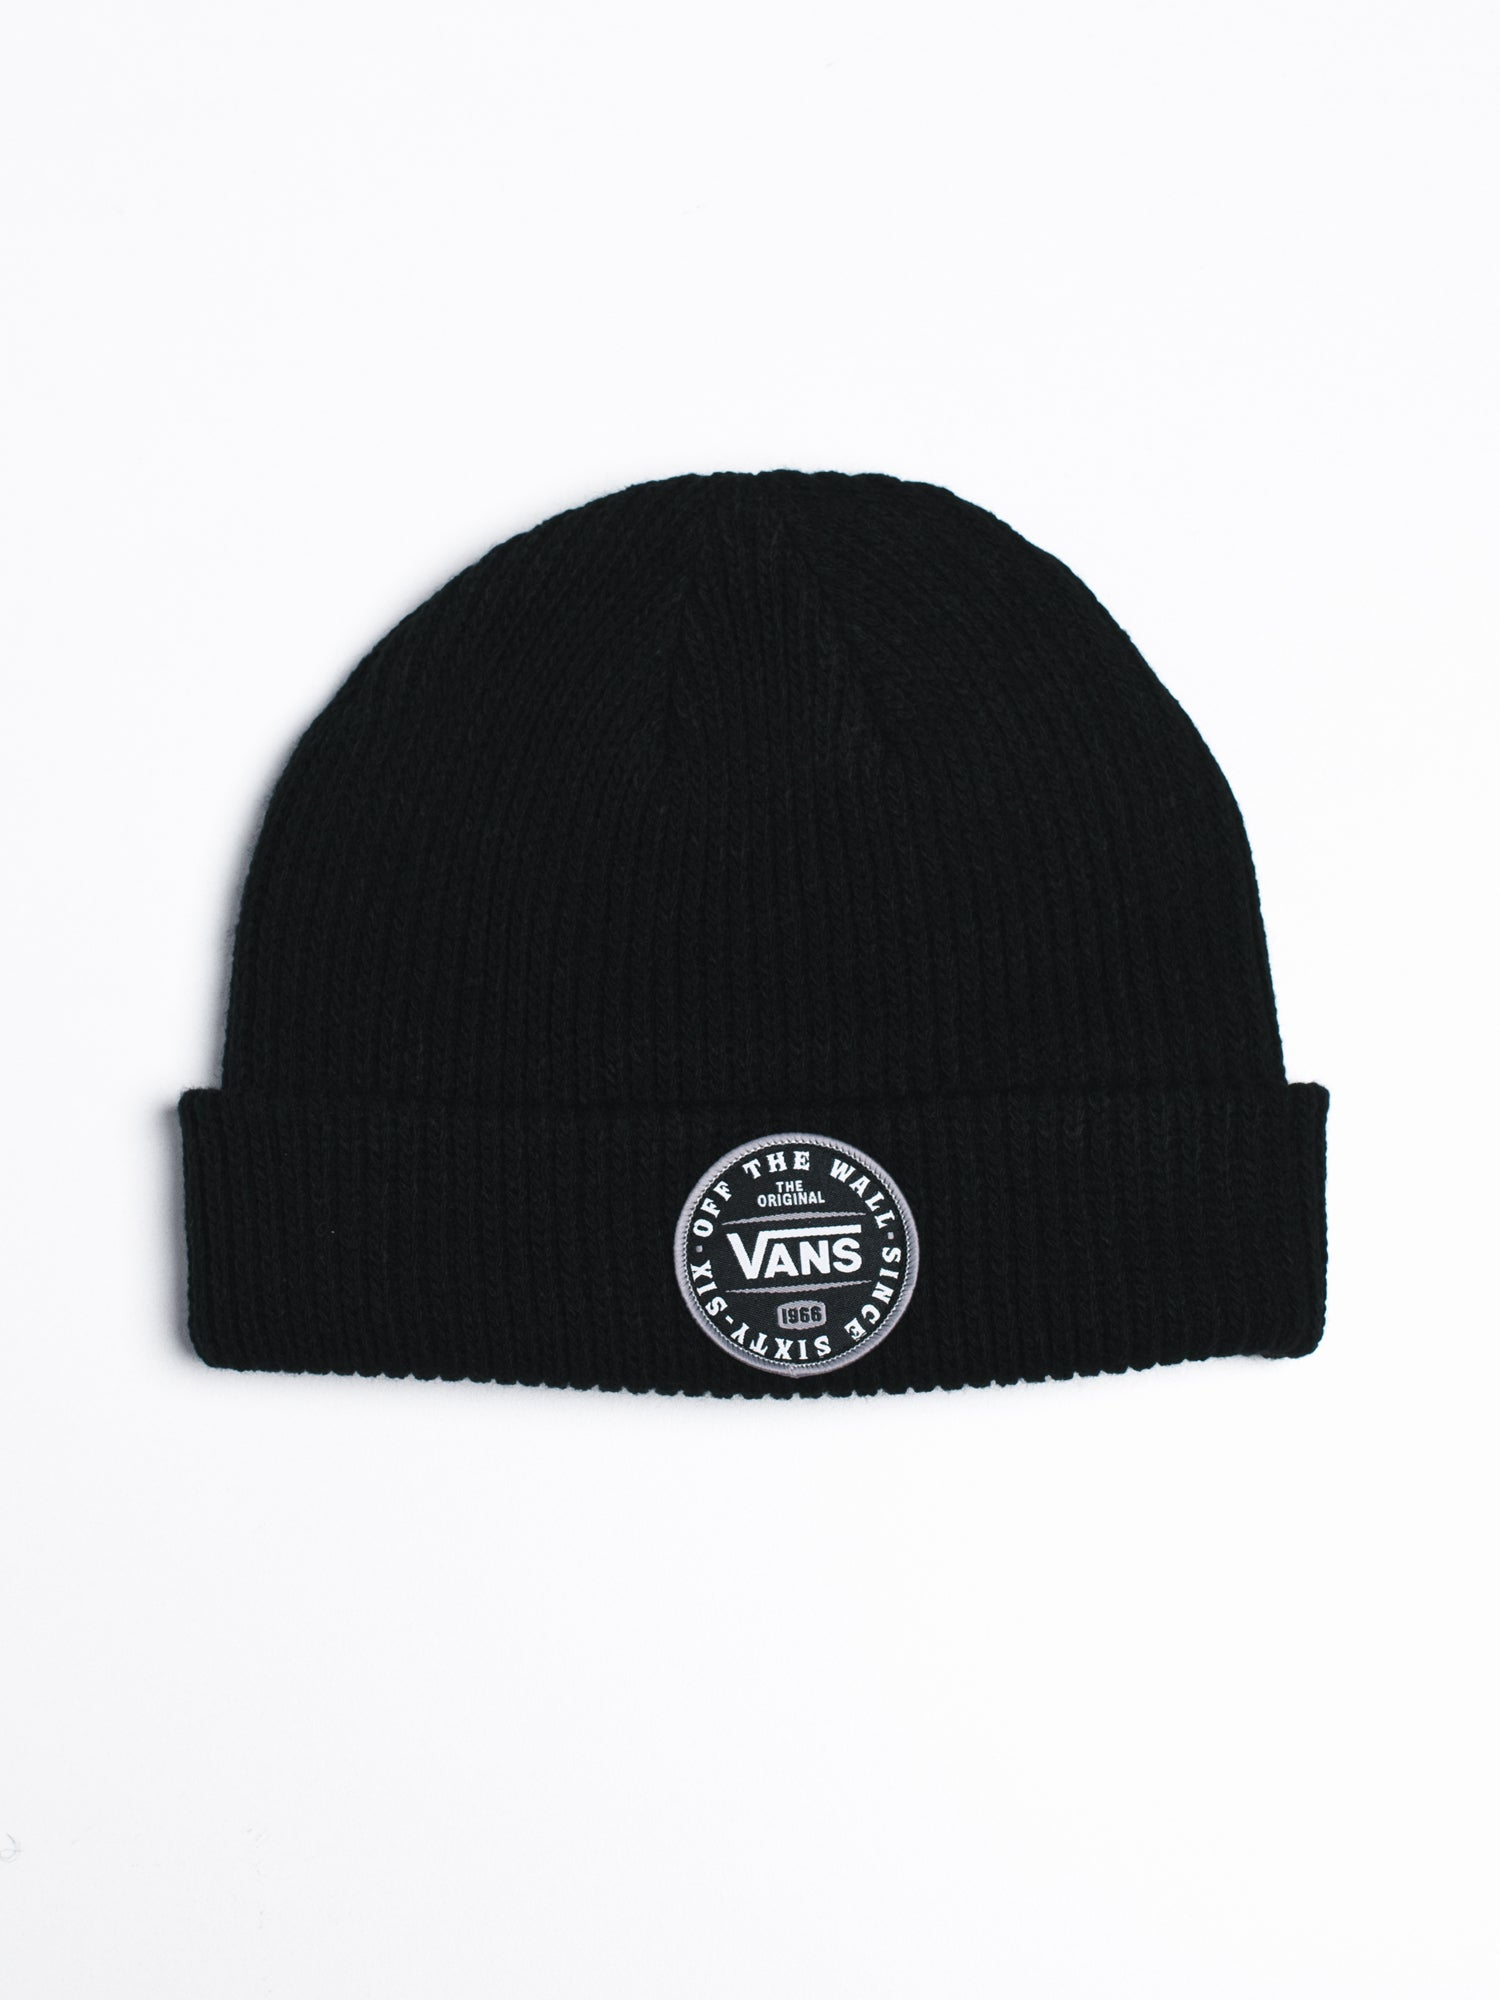 f4c79a71f3d Others Were Interested In. VANS. FALCON BEANIE ...